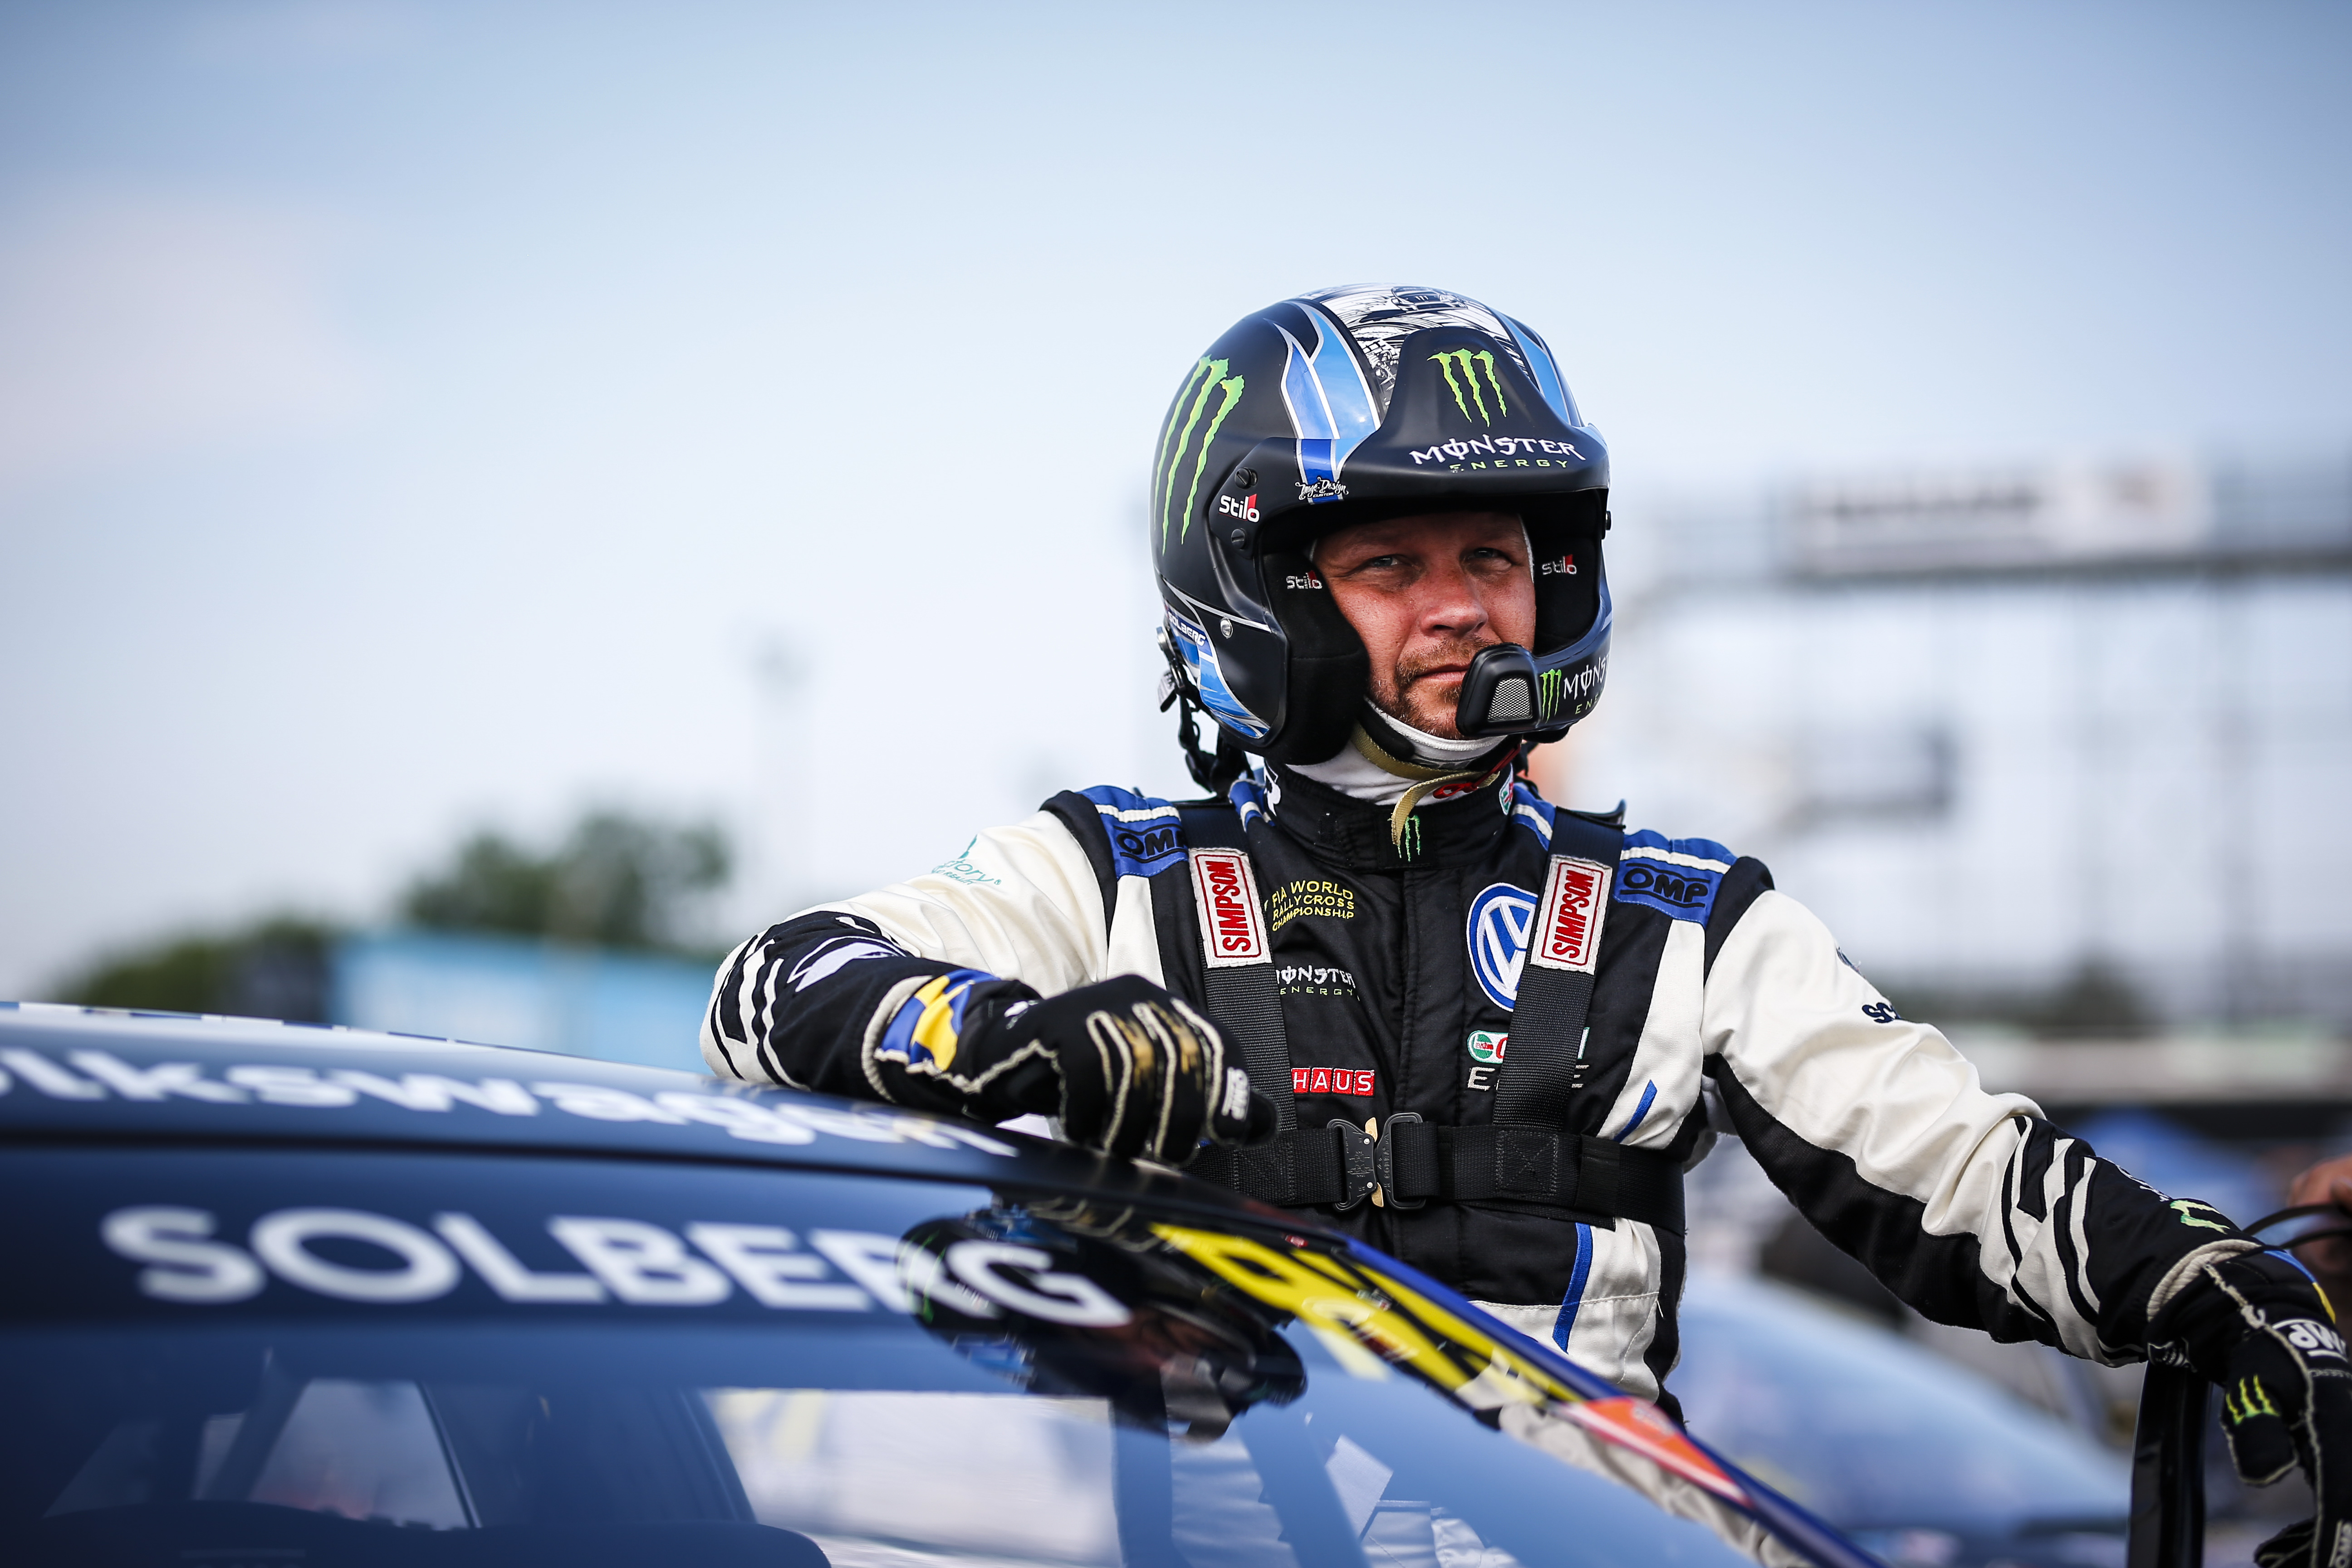 Solberg set for WRC return with VW